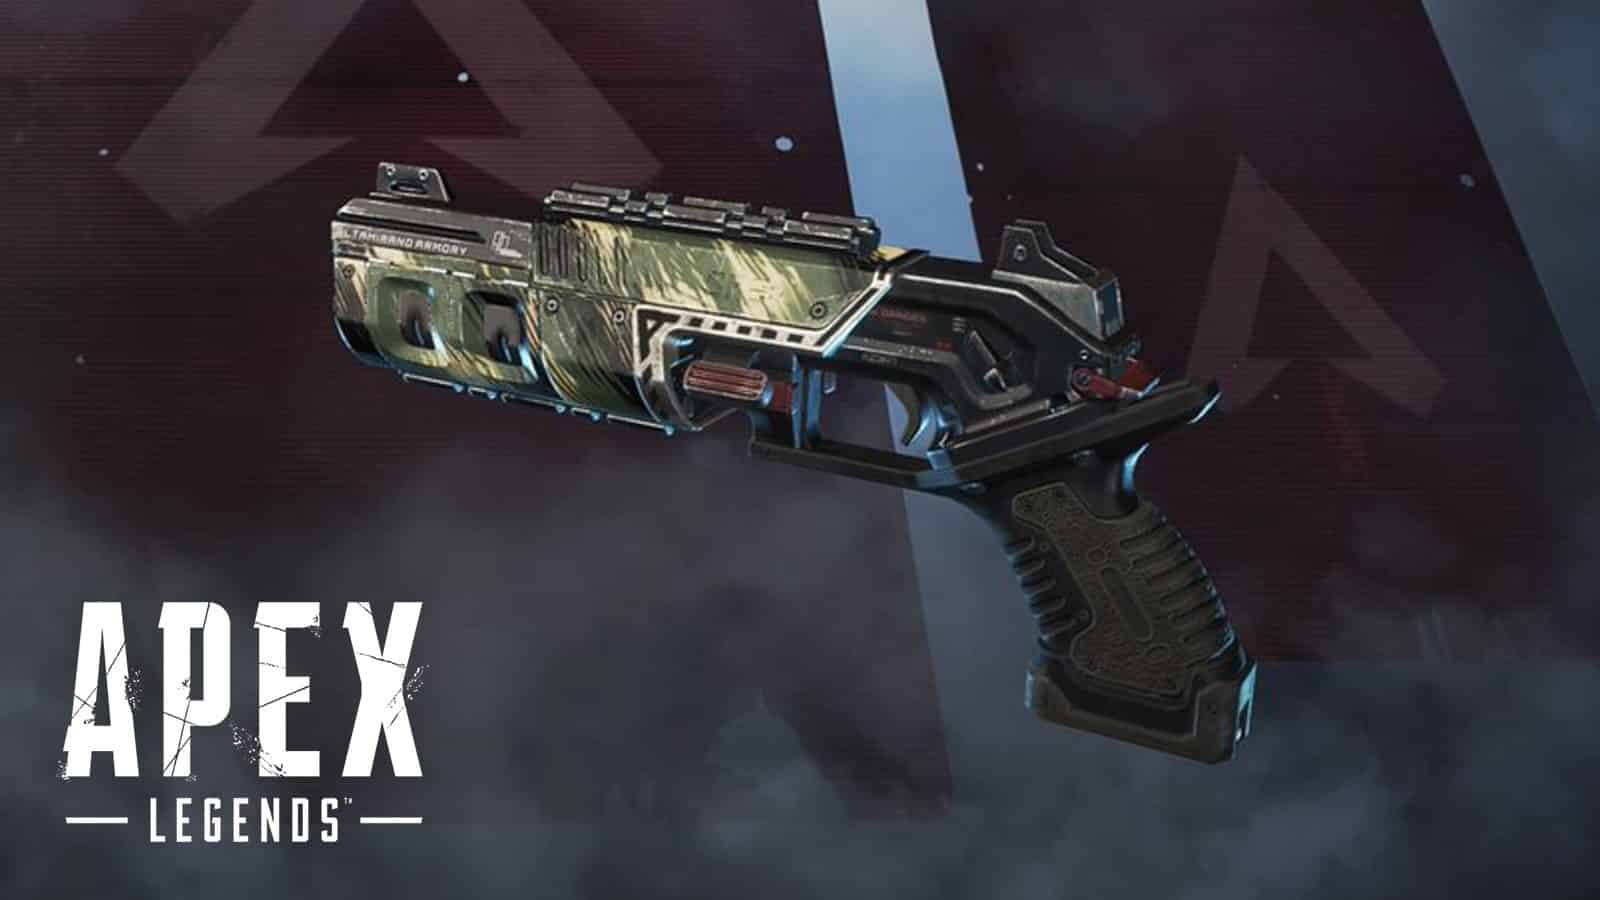 Introduced by New Apex Legends Weapon, the creators